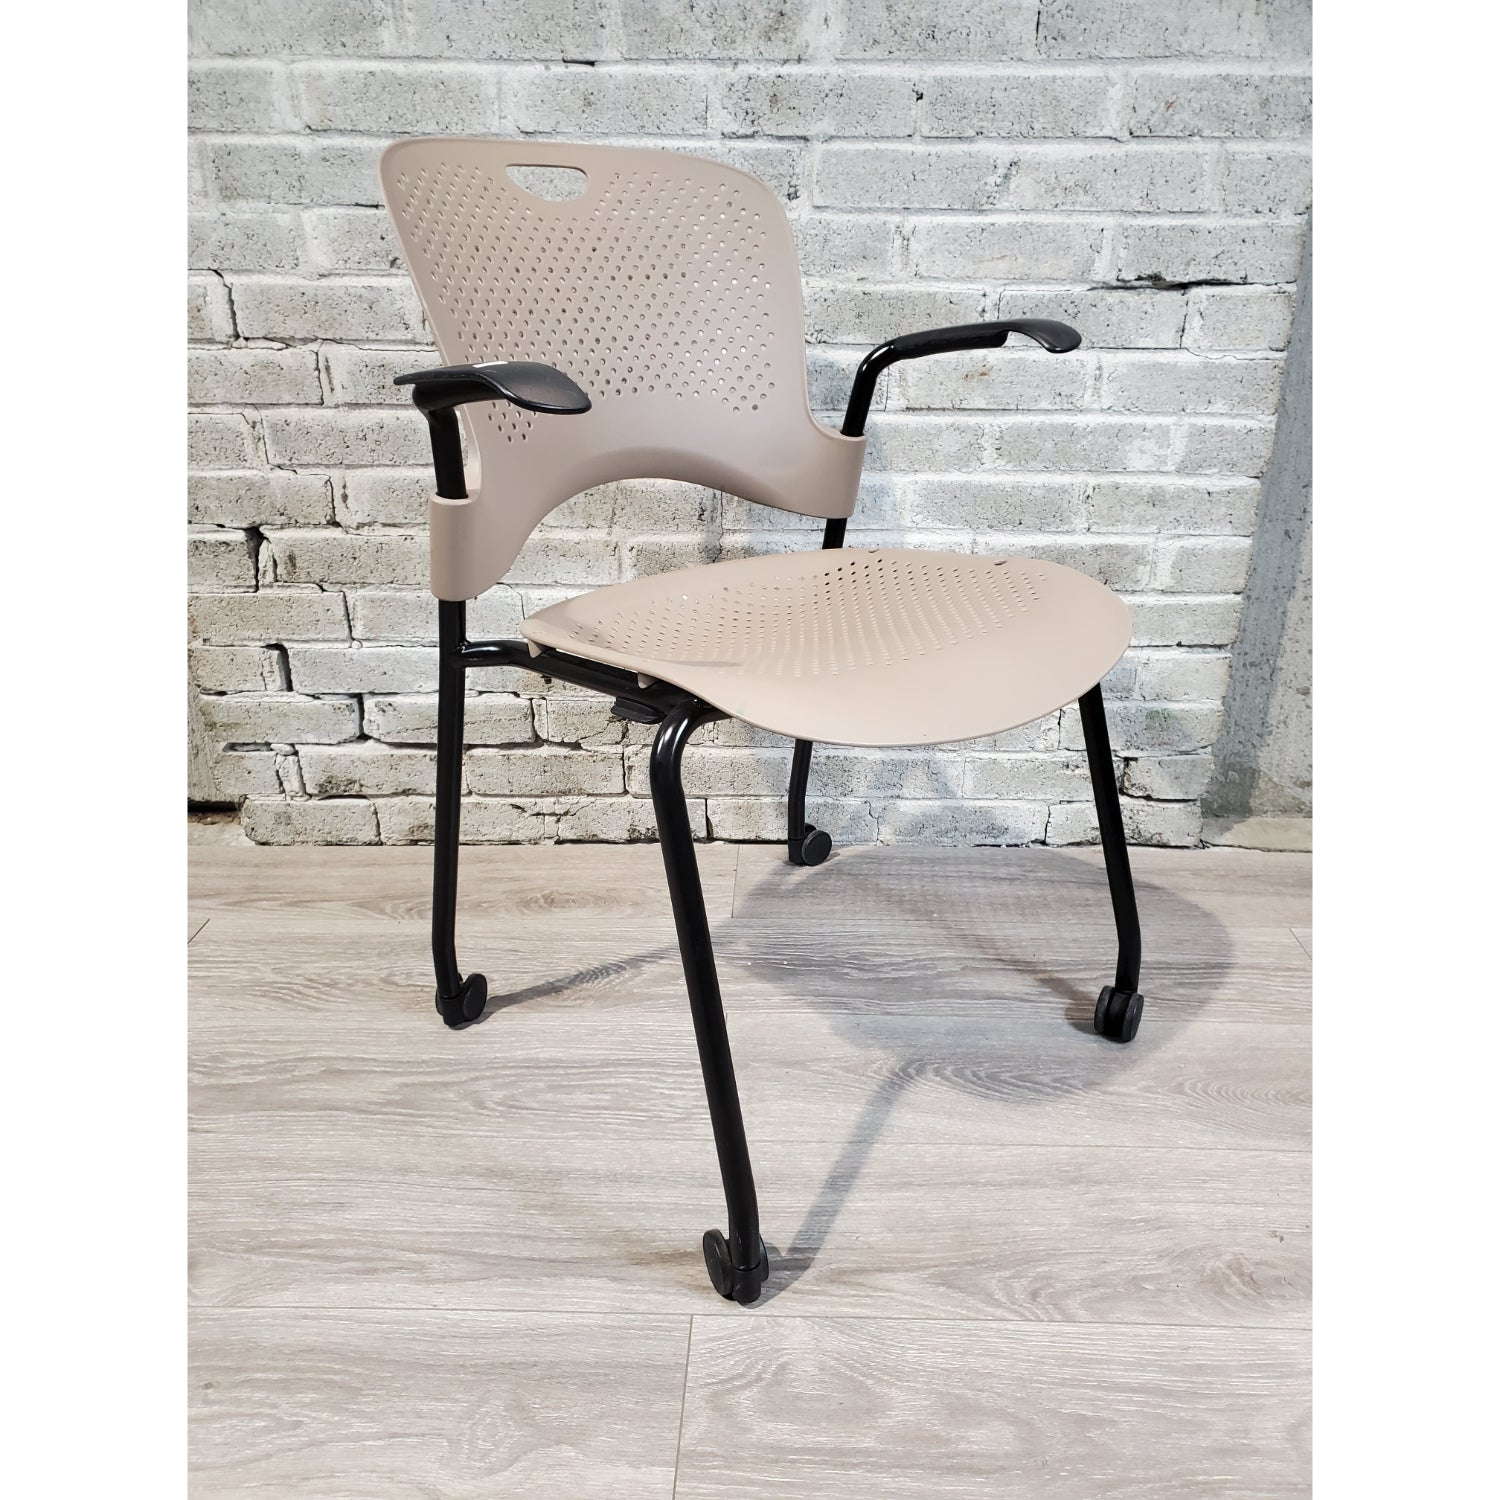 Pre-Owned - Used Herman Miller Caper Side Chair with Casters - Taupe - Duckys Office Furniture